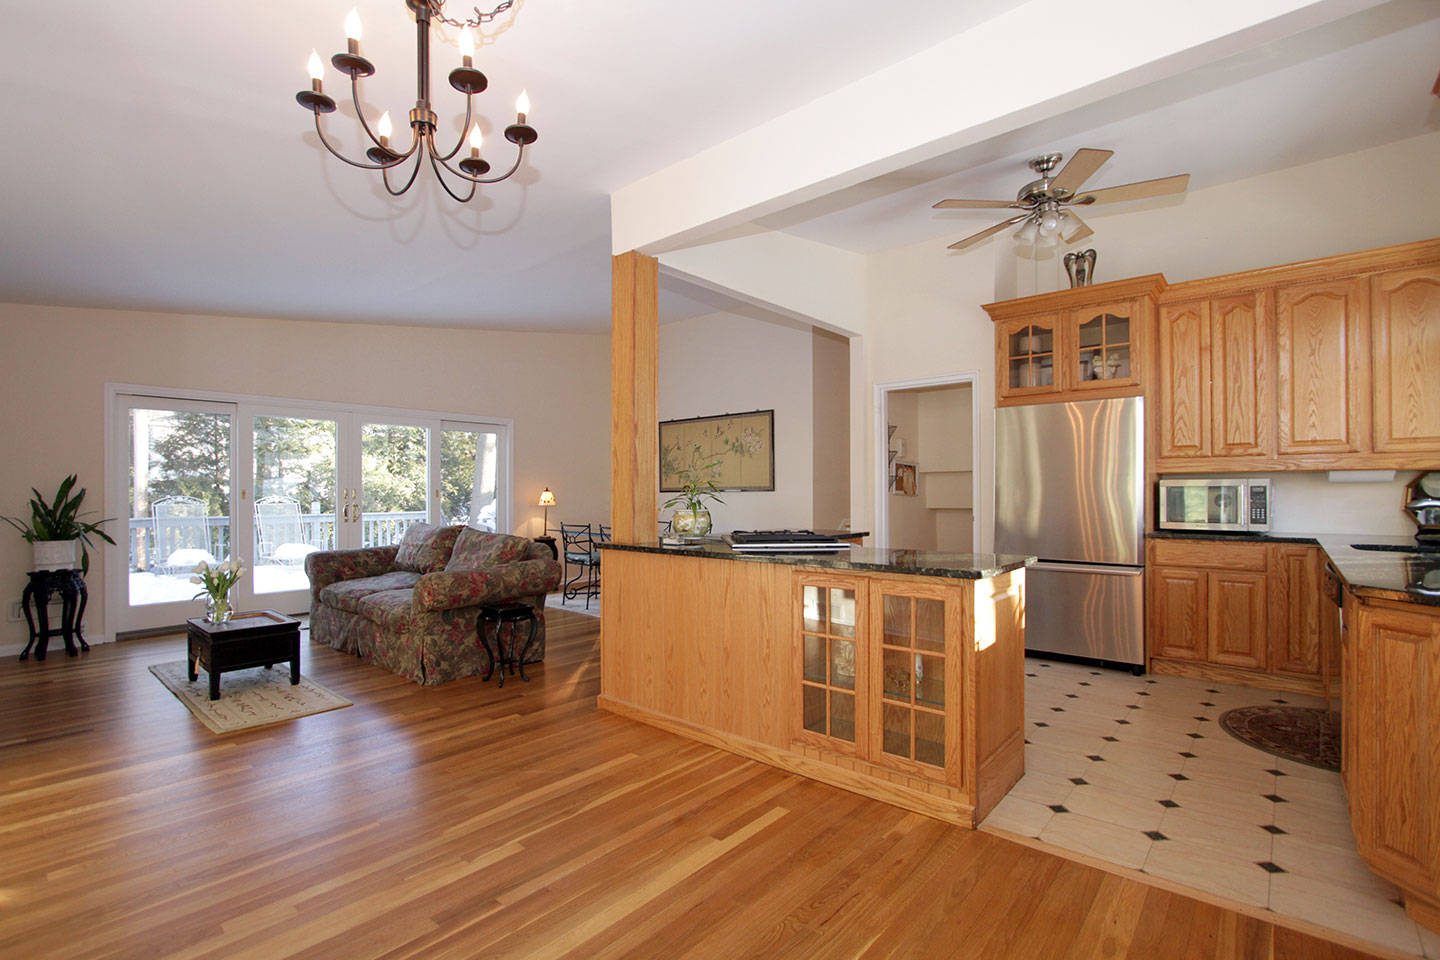 3 4br 2 5 Baths Updated Home For Sale In Summit Nj